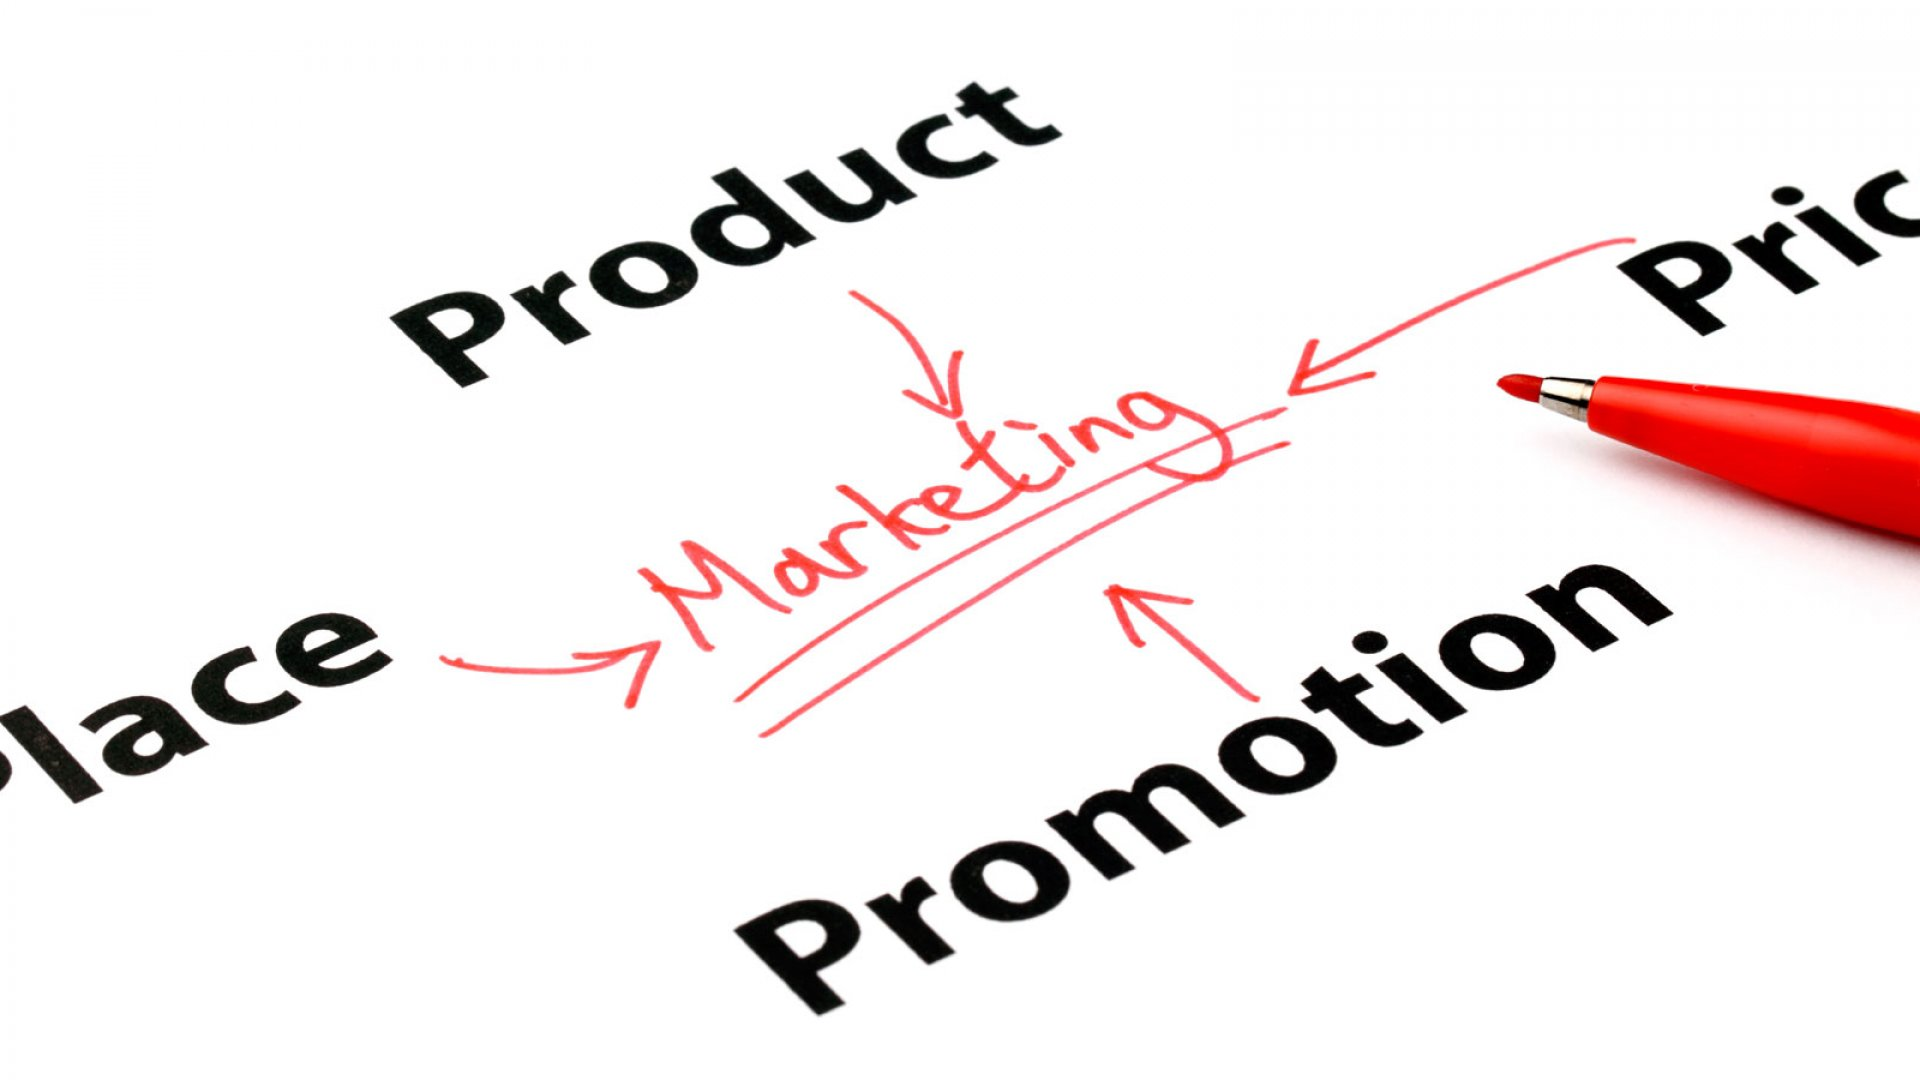 The Five Ps of Marketing: Product, Place, Promotion, Price, and Profit